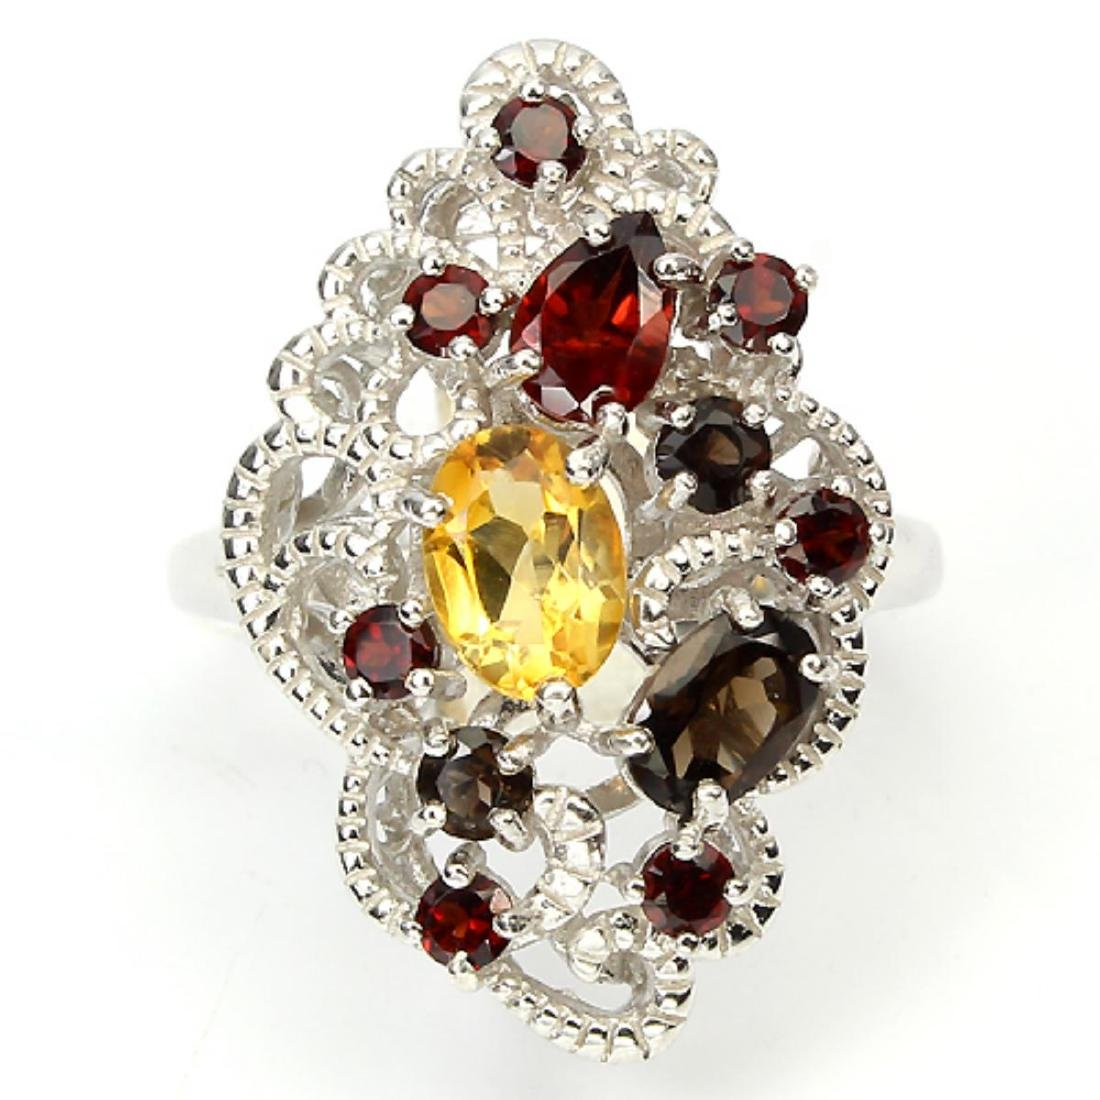 Stunning Natural Garnet Ring - 2